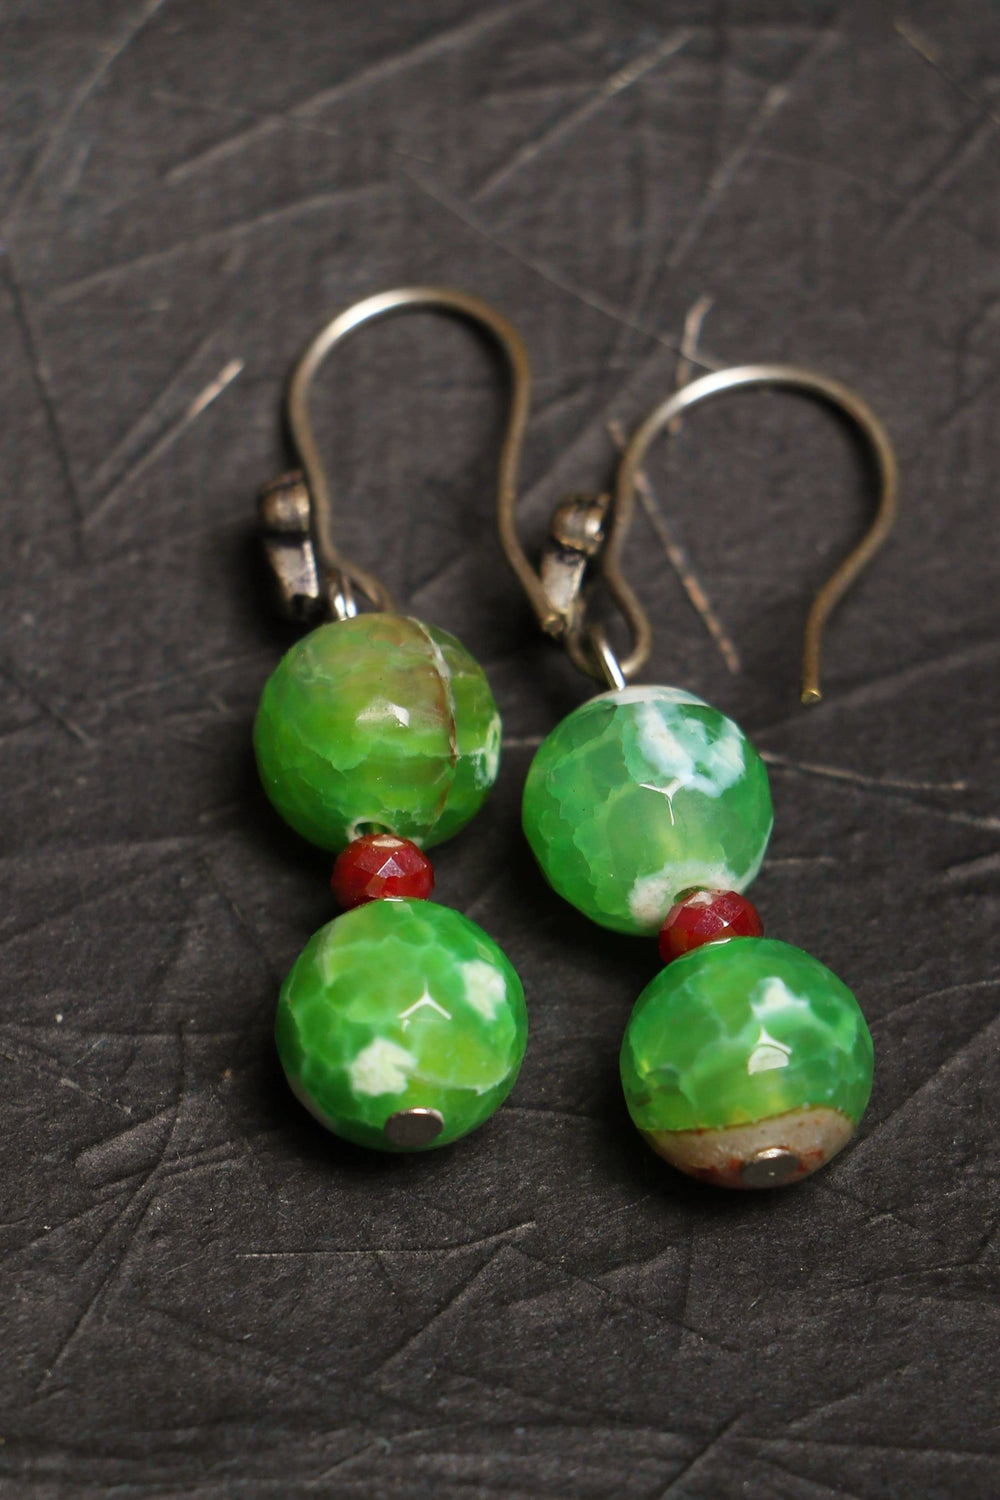 Apple green fire agate, and silver dholki beads earrings